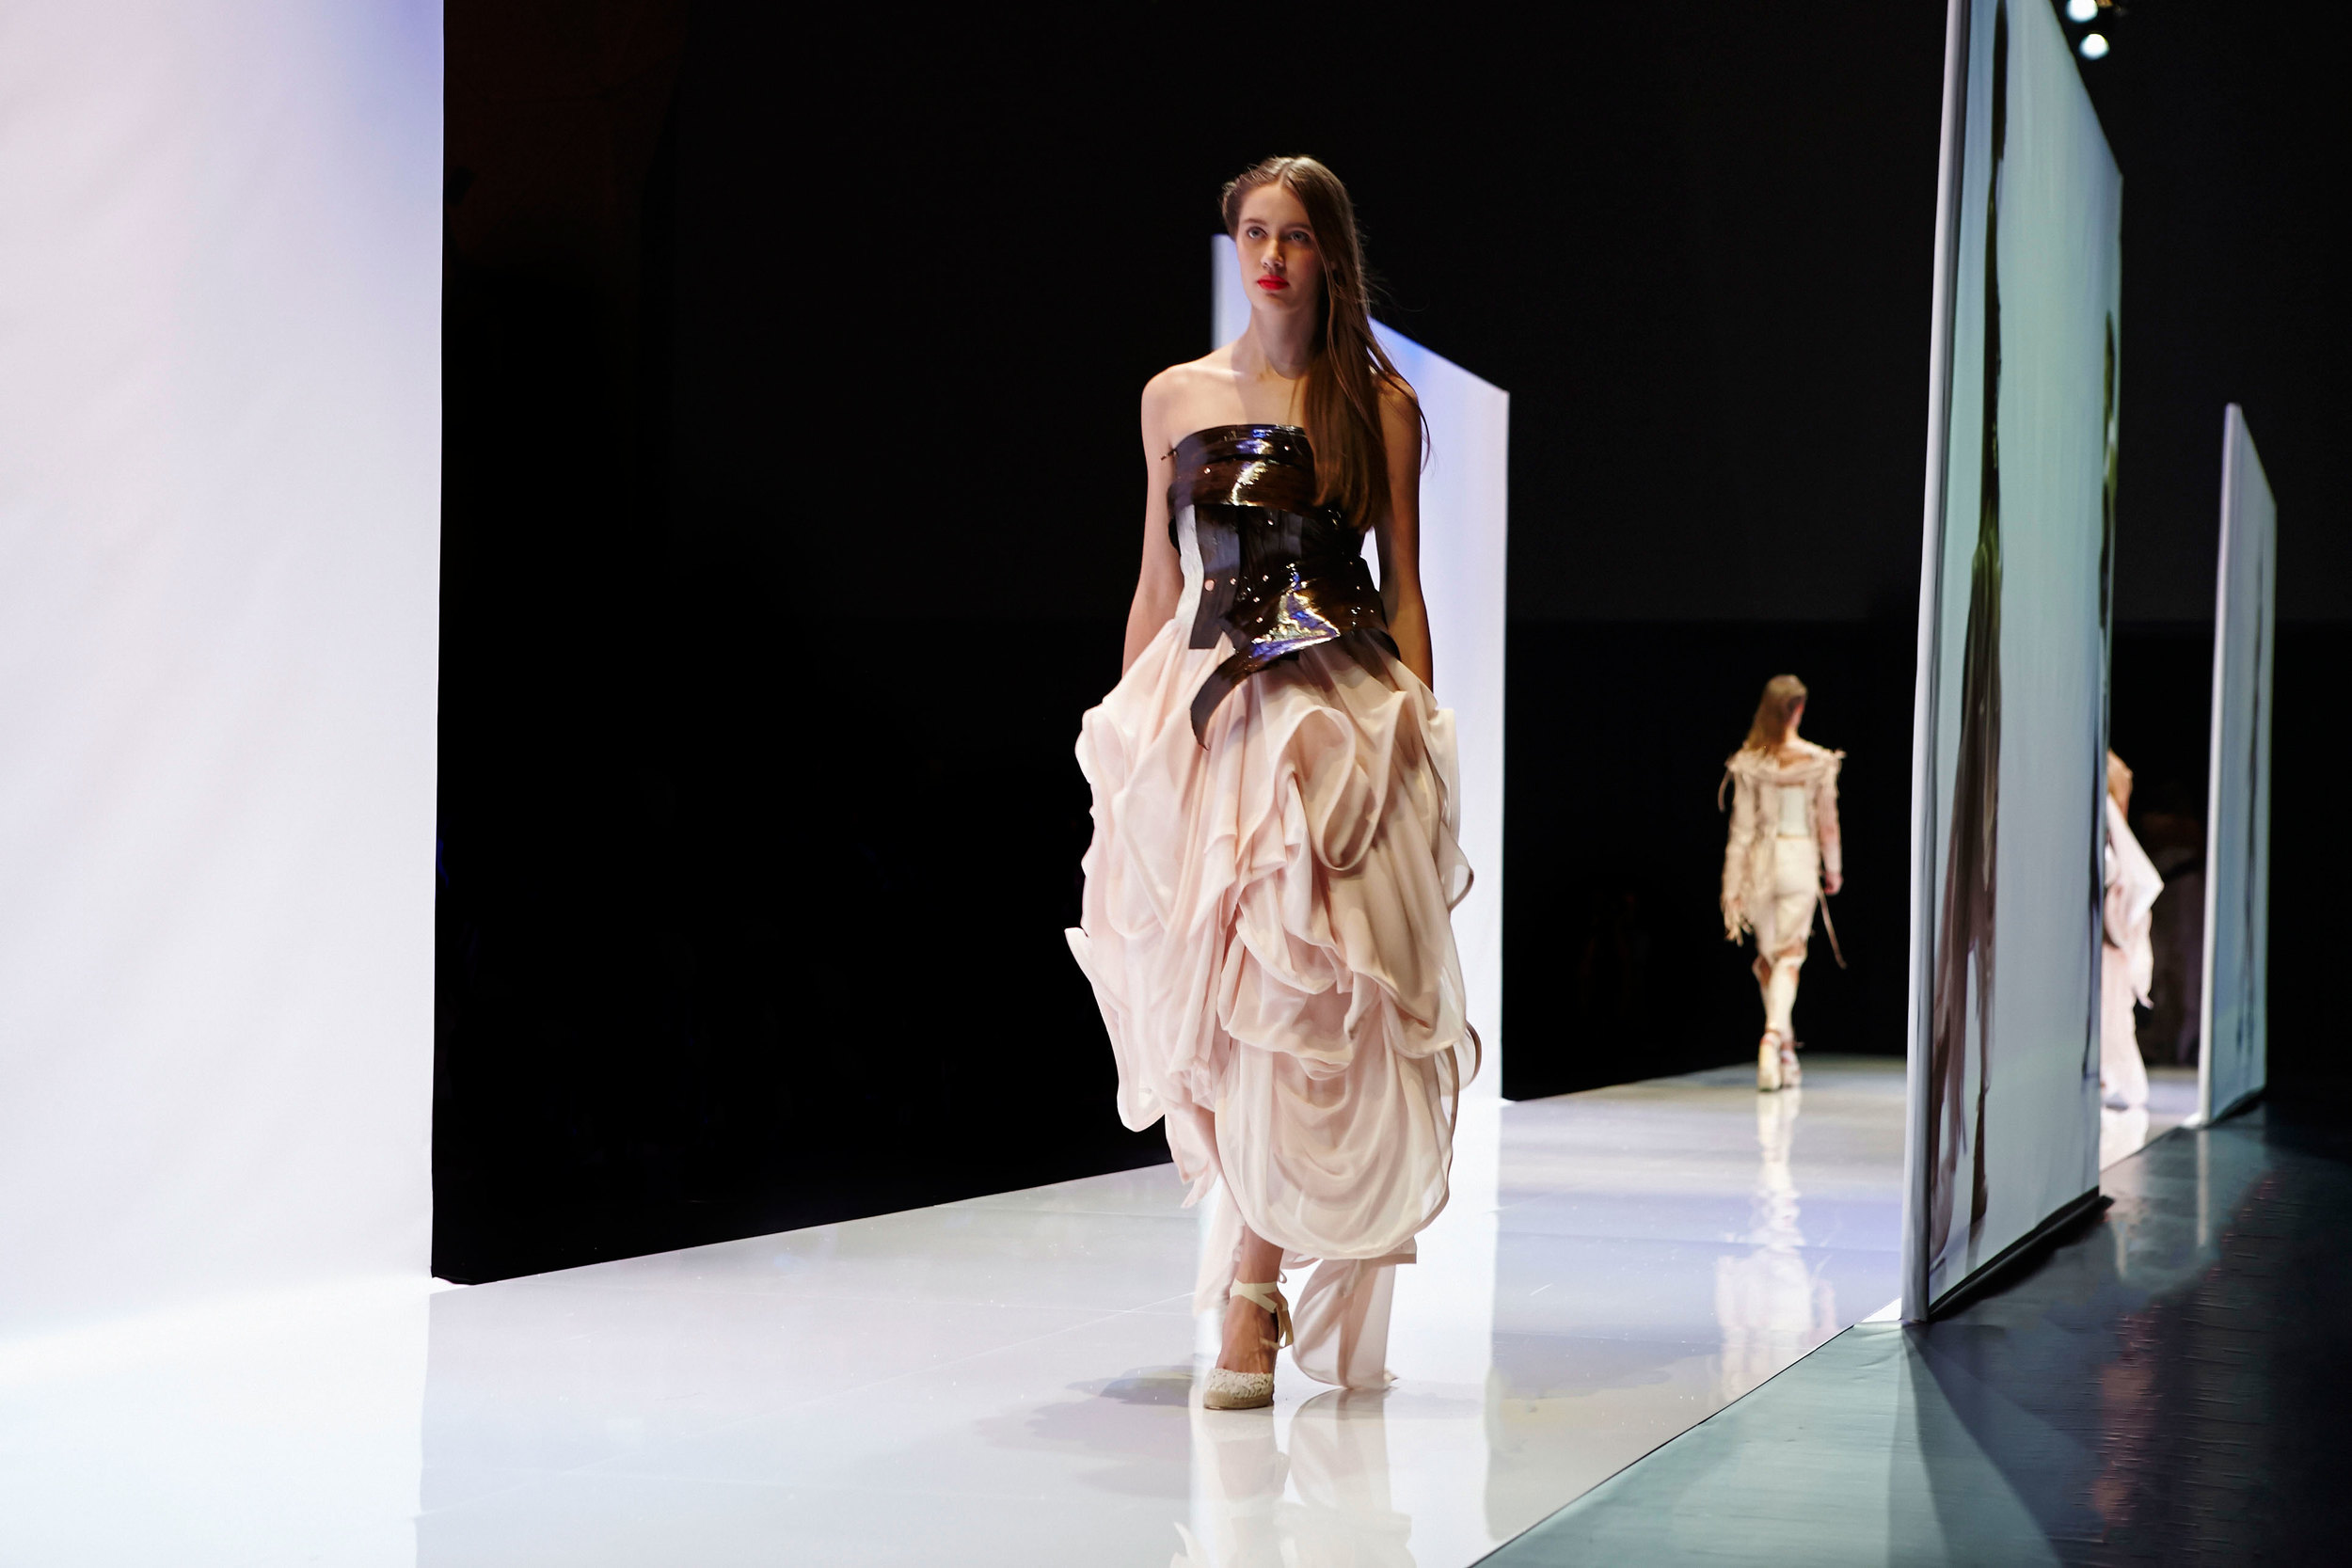 UTS-Fashion-Show-2014-Boris-Bresil-04.jpg